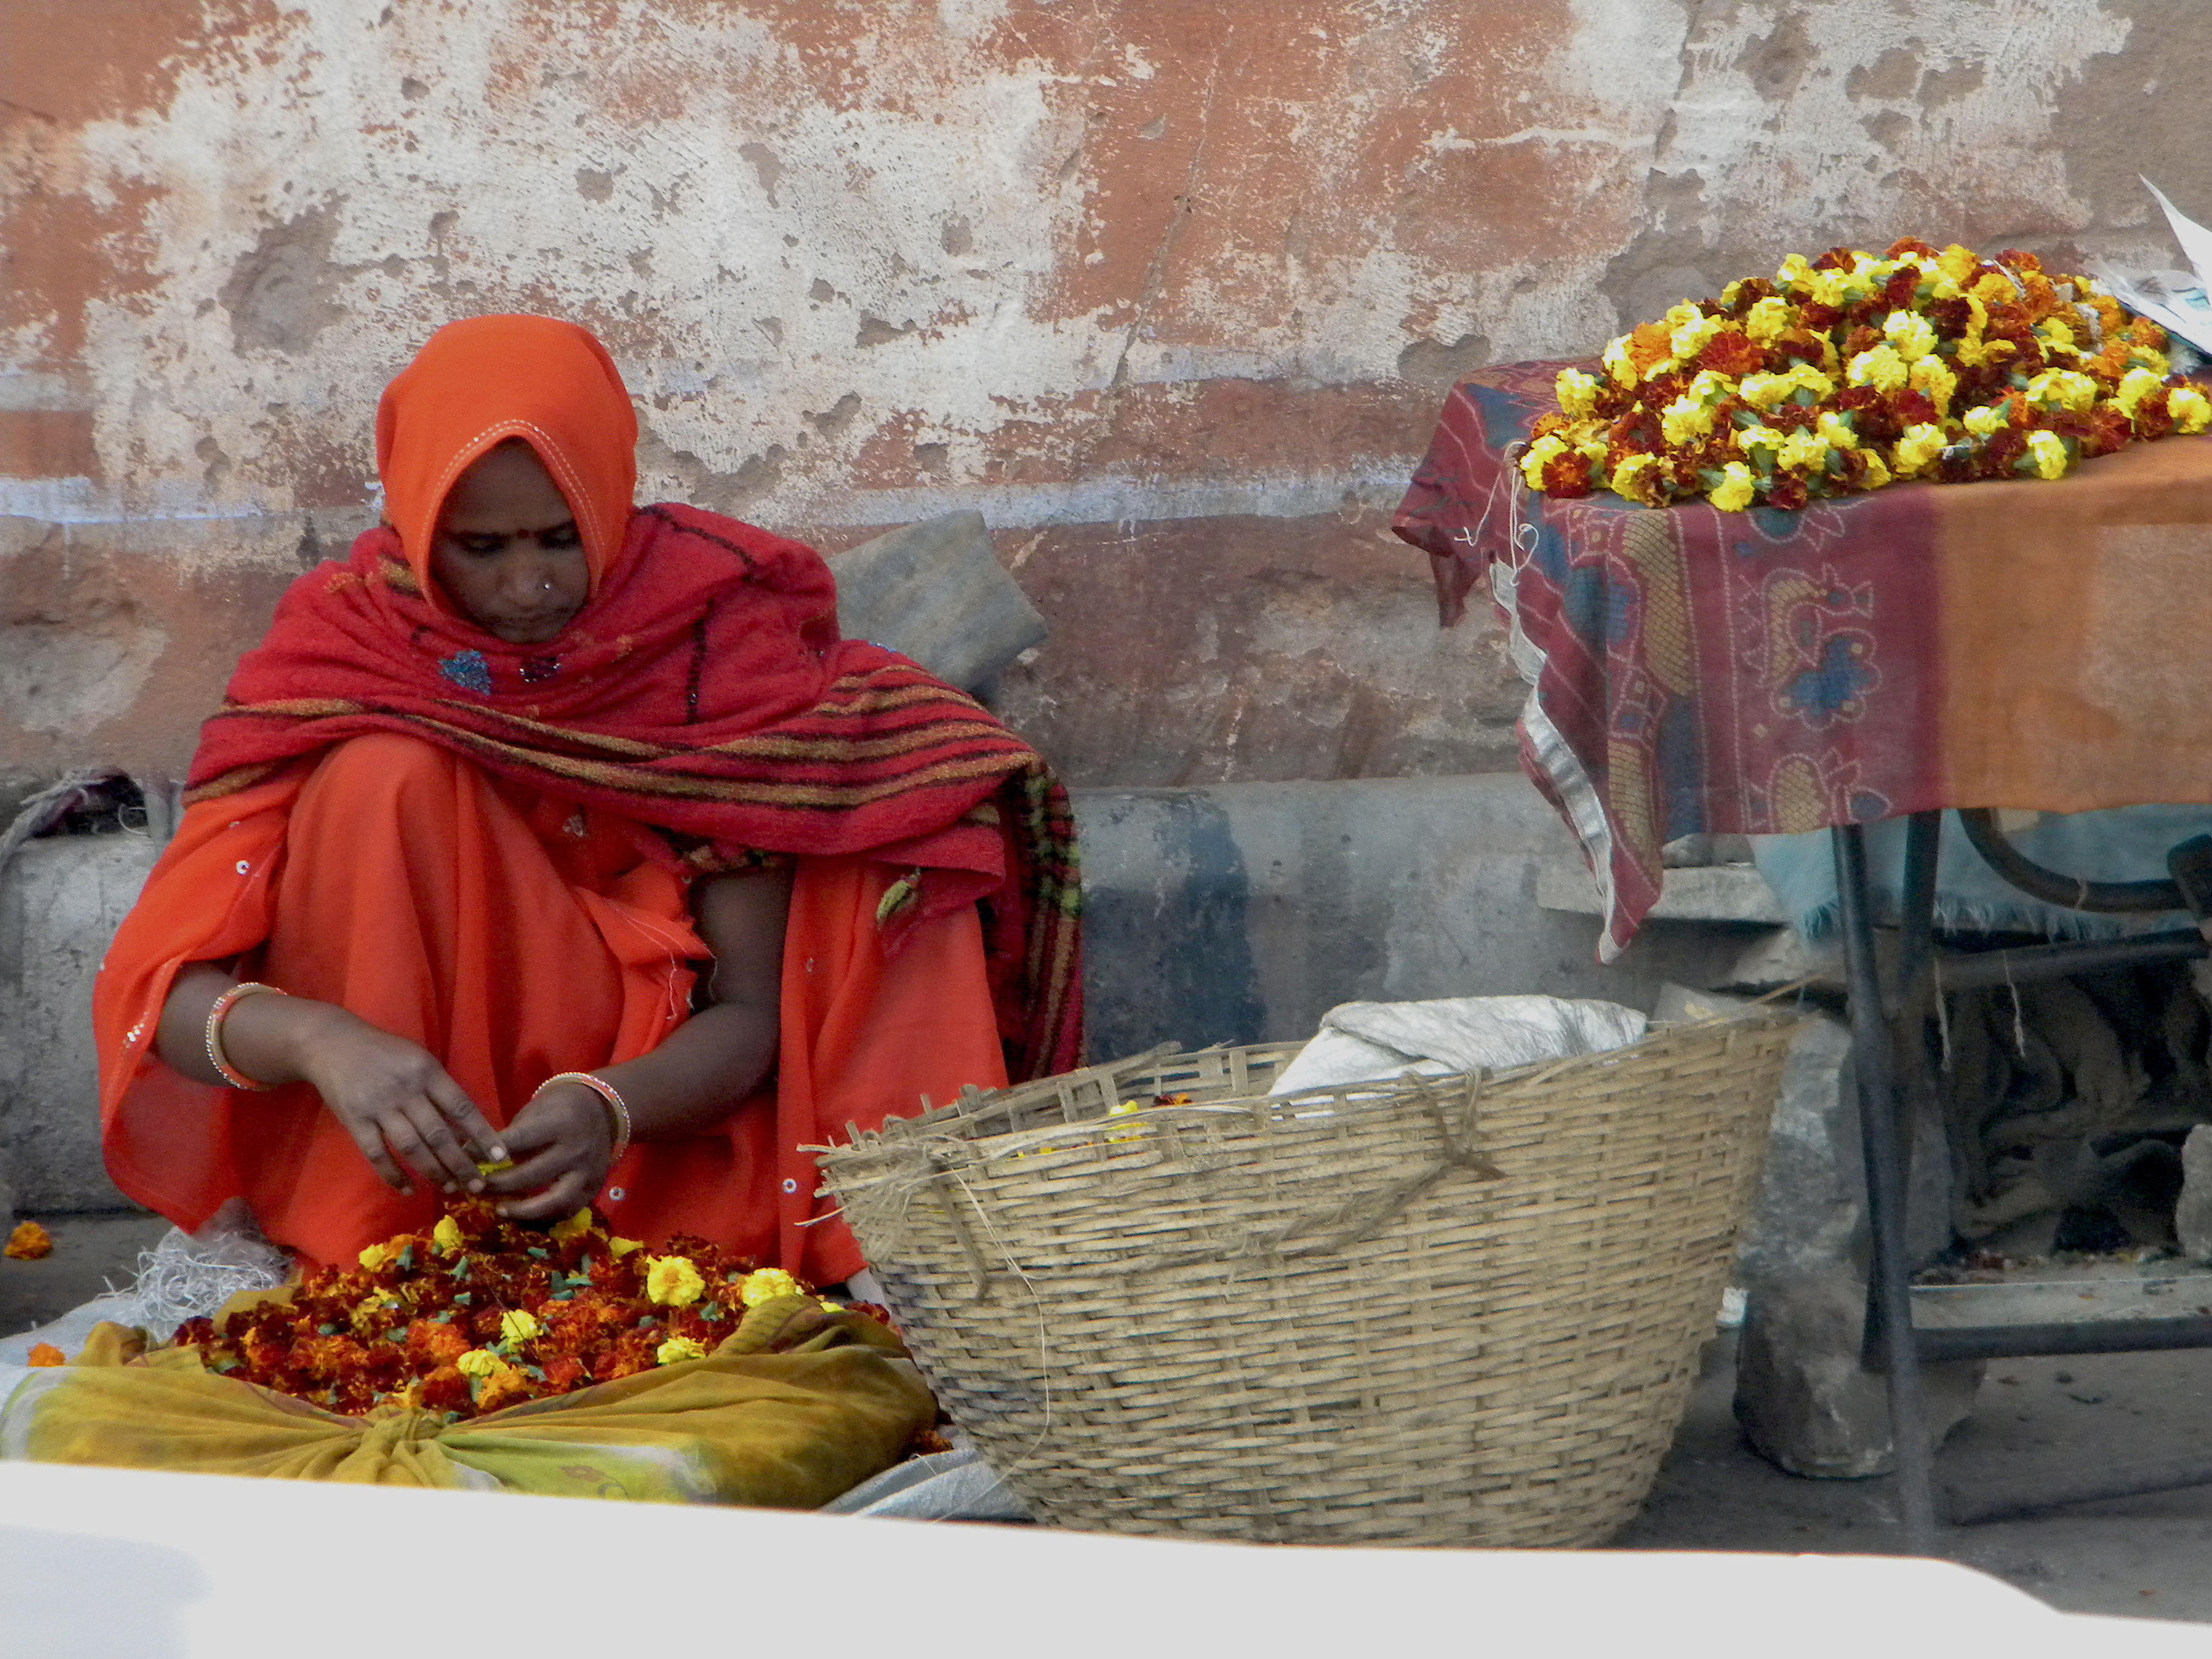 Red, India 2010